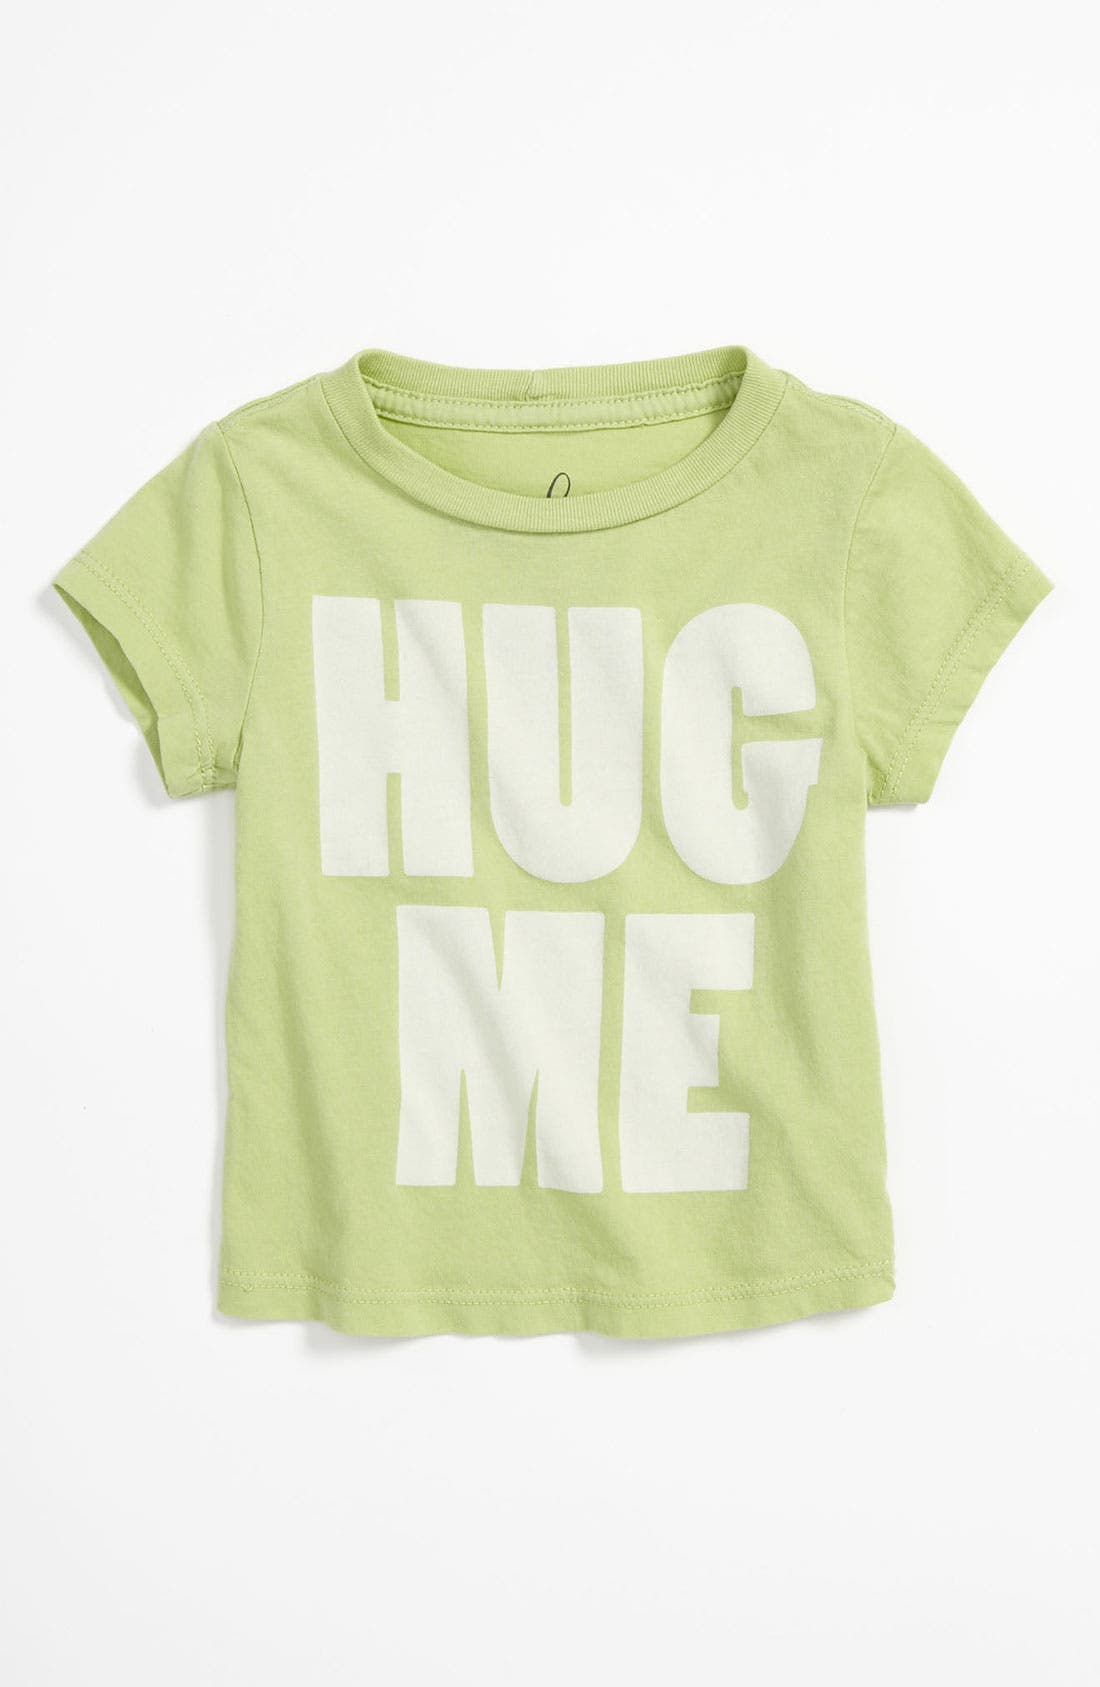 Alternate Image 1 Selected - Peek 'Little Peanut - Hug Me' T-Shirt (Baby)